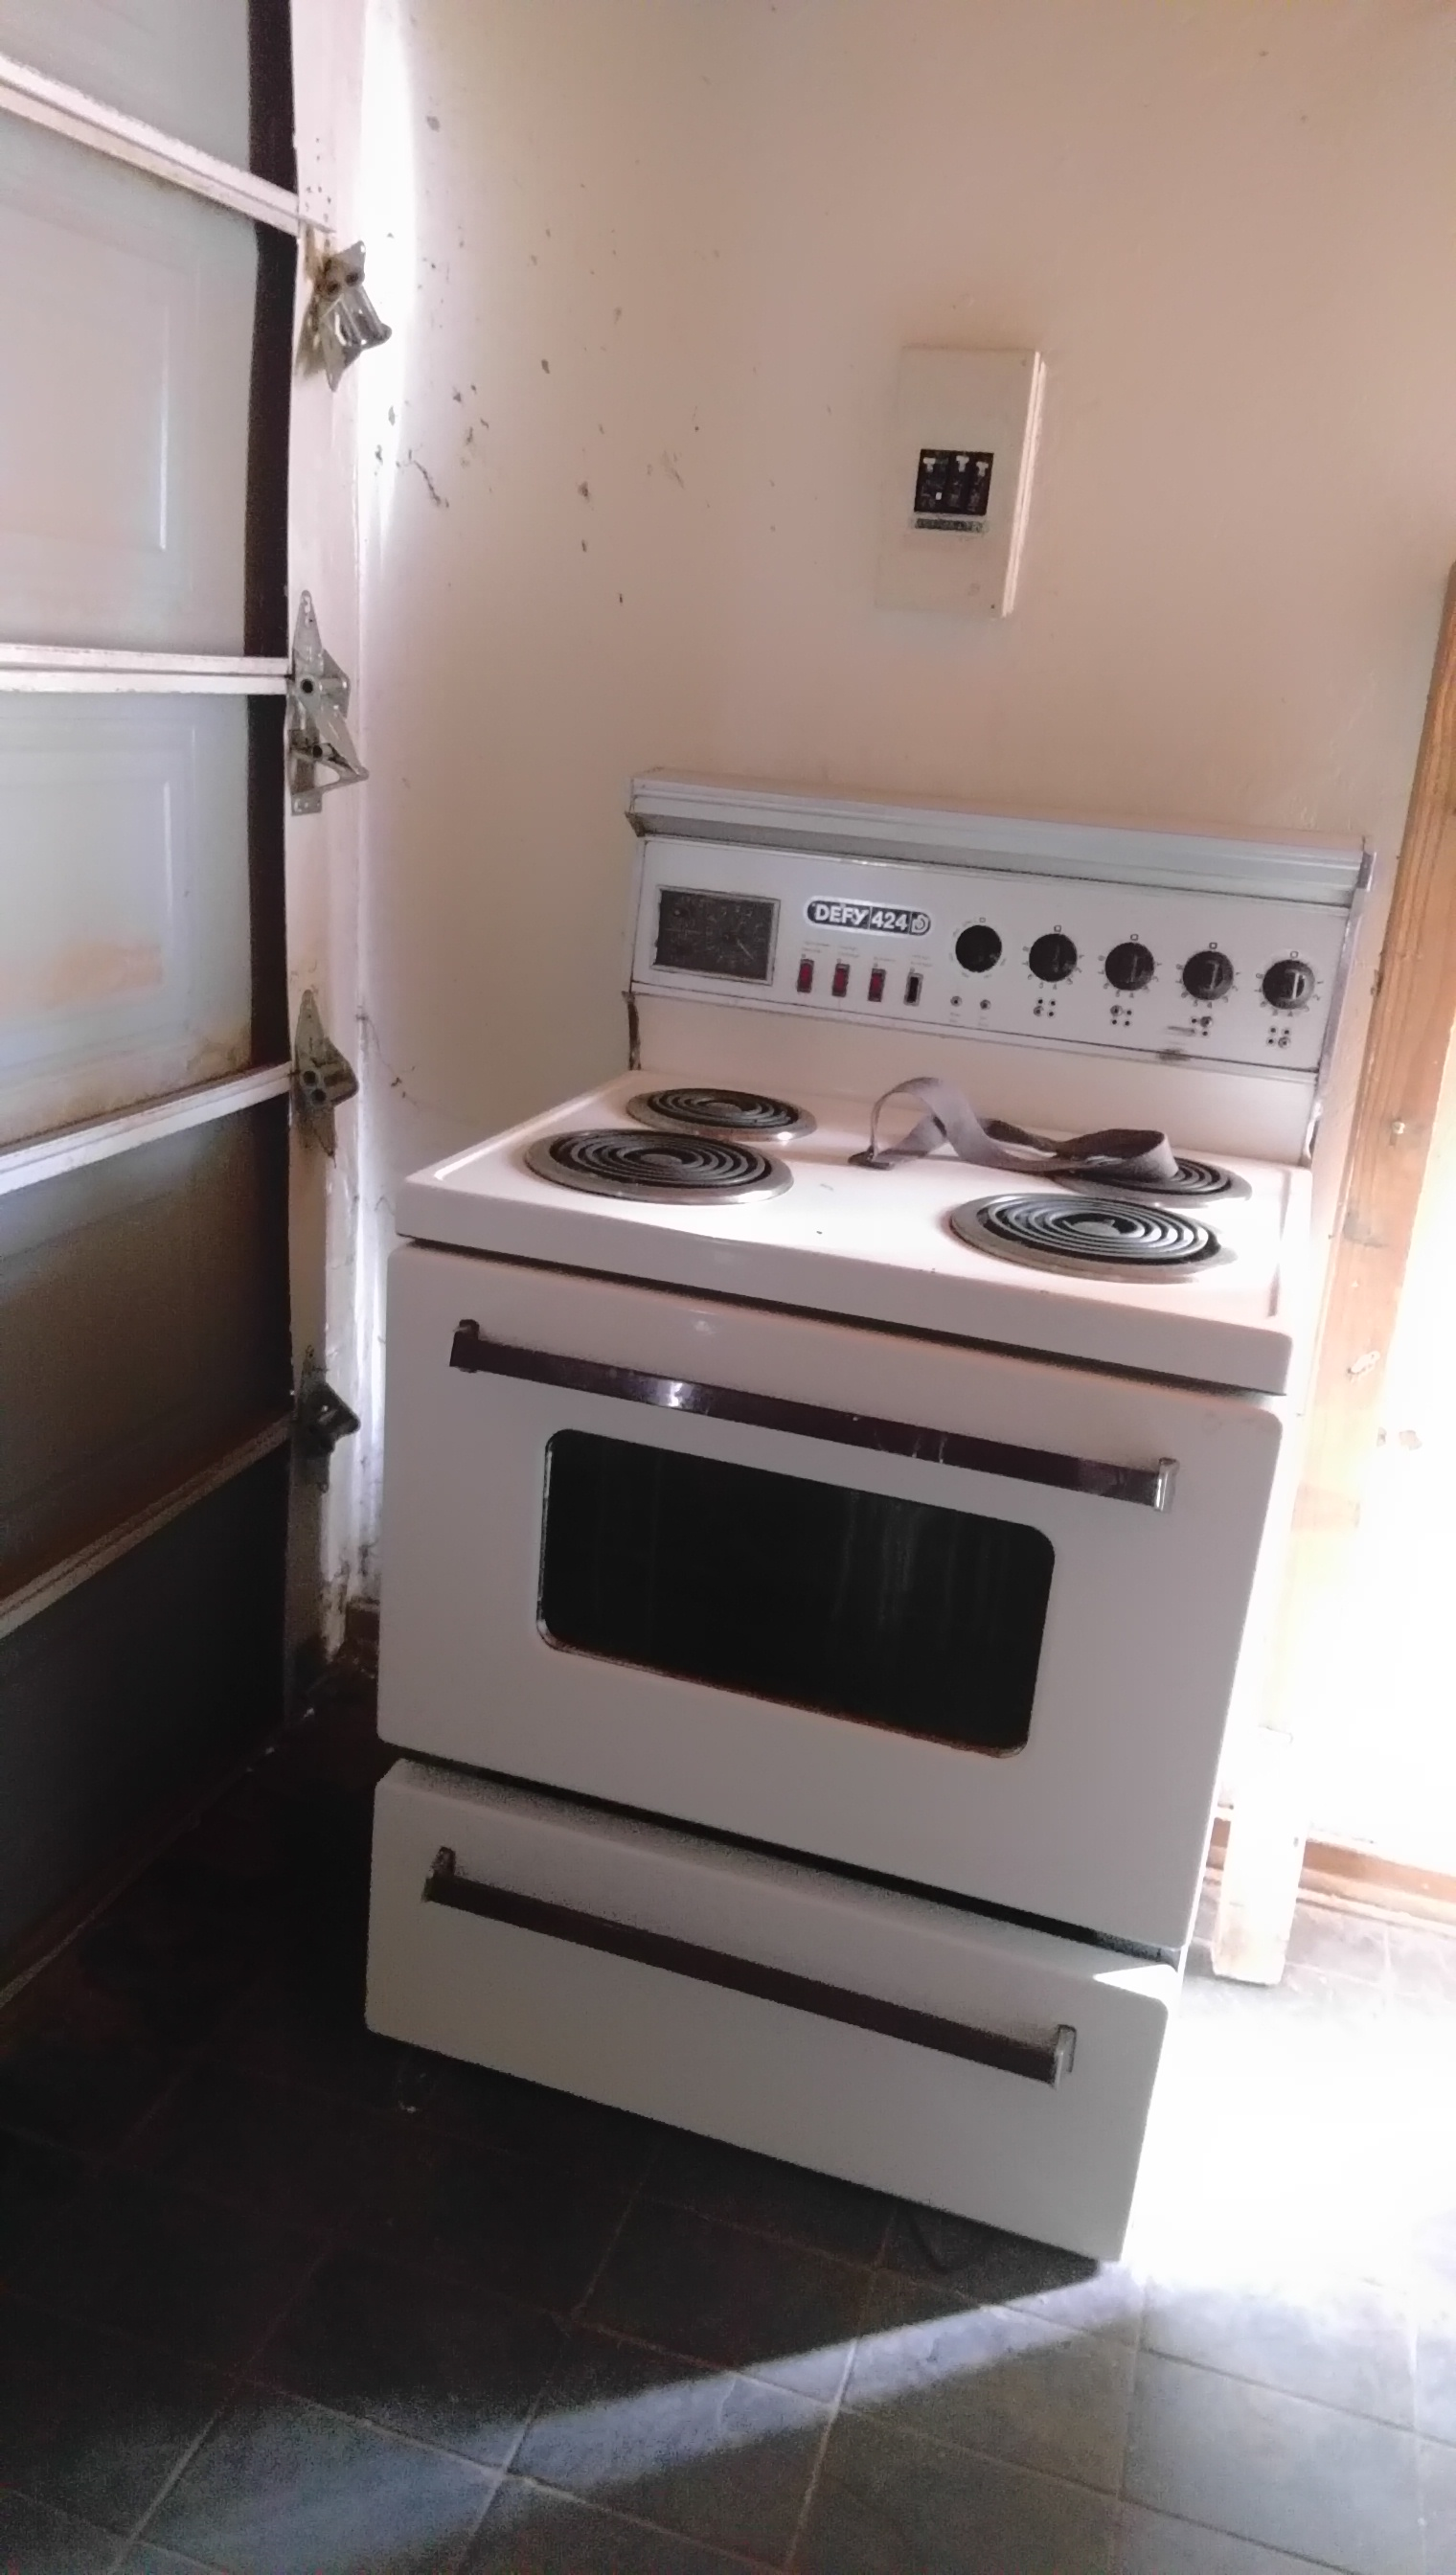 Fridge/Stove Combo